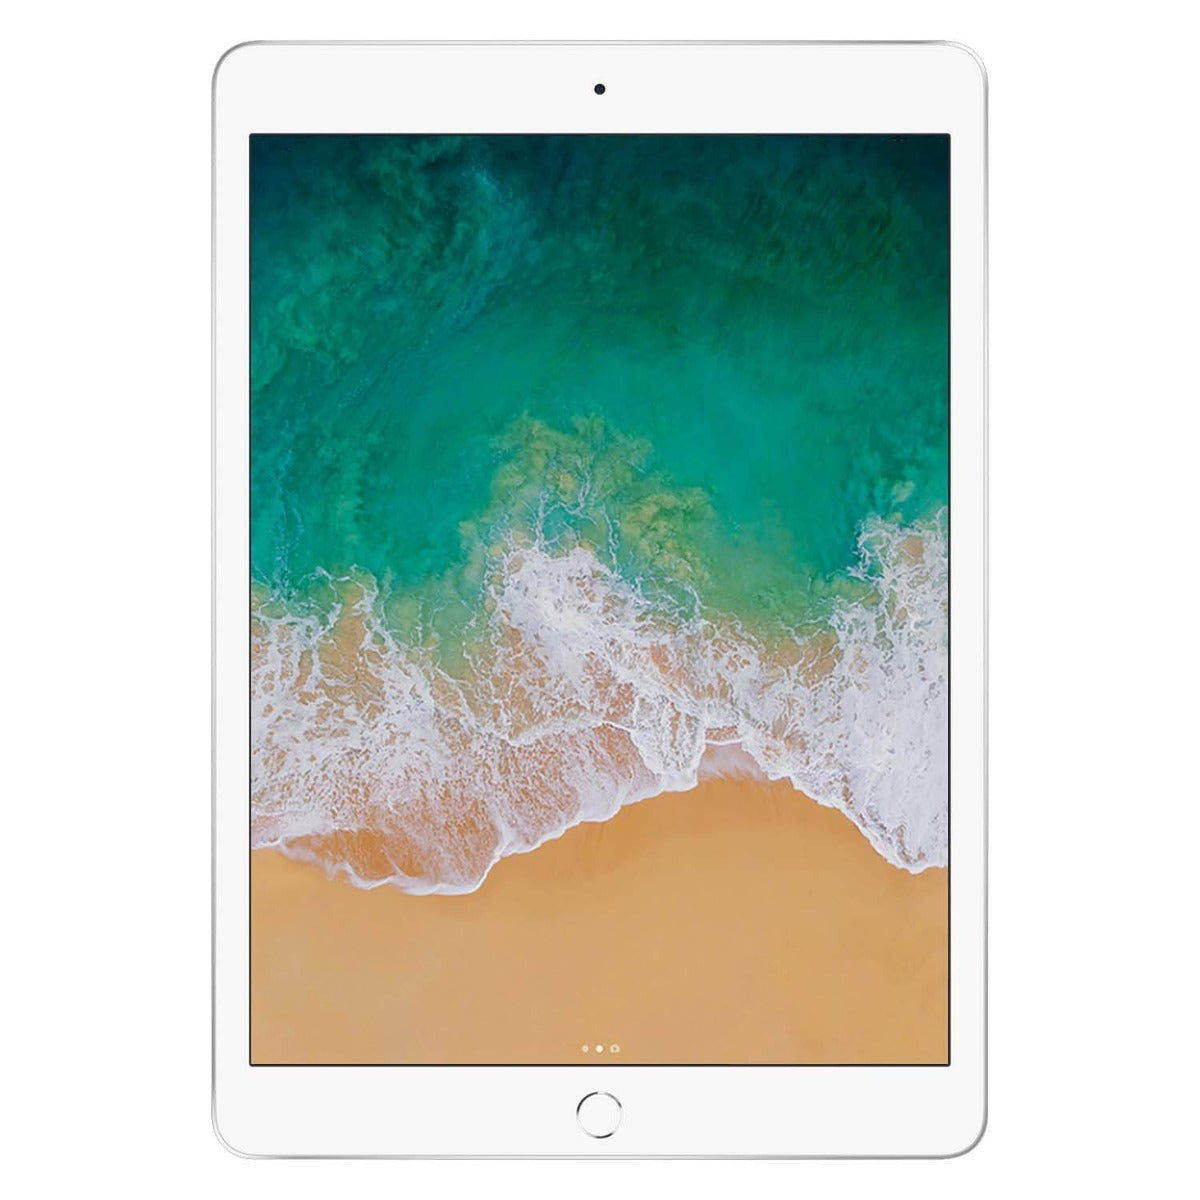 iPad 2018 32GB Silver Wifi Only